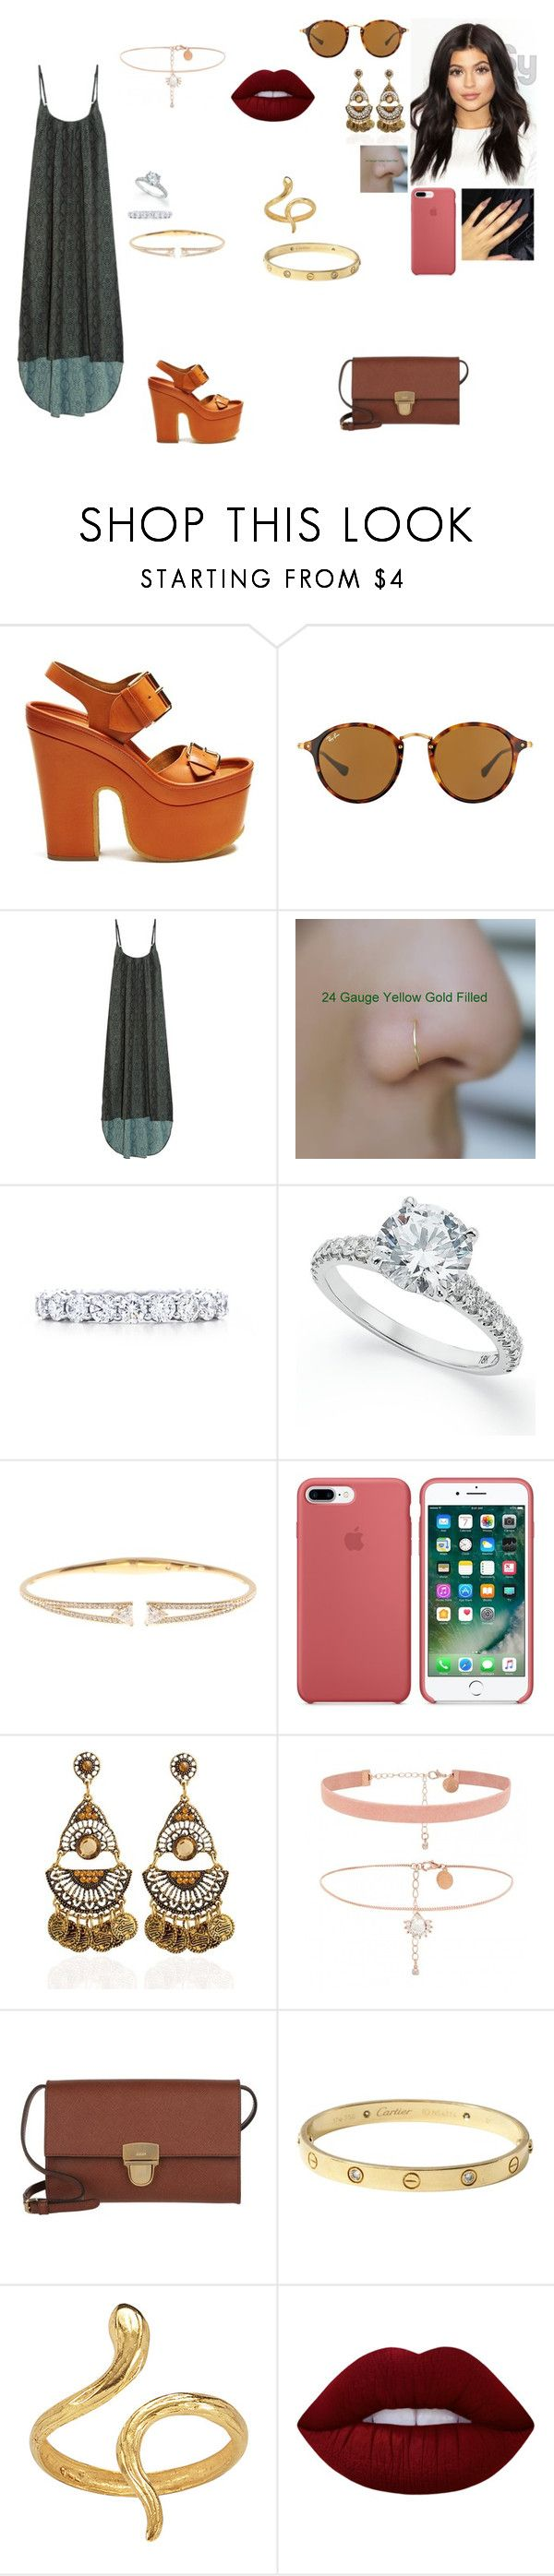 """Sally going to a romantic trip with her husband in San Franscico."" by princesscece6 ❤ liked on Polyvore featuring STELLA McCARTNEY, Ray-Ban, Melissa Odabash, Tiffany & Co., Nadri, Joop!, Cartier, Madina Visconti di Modrone and Lime Crime"